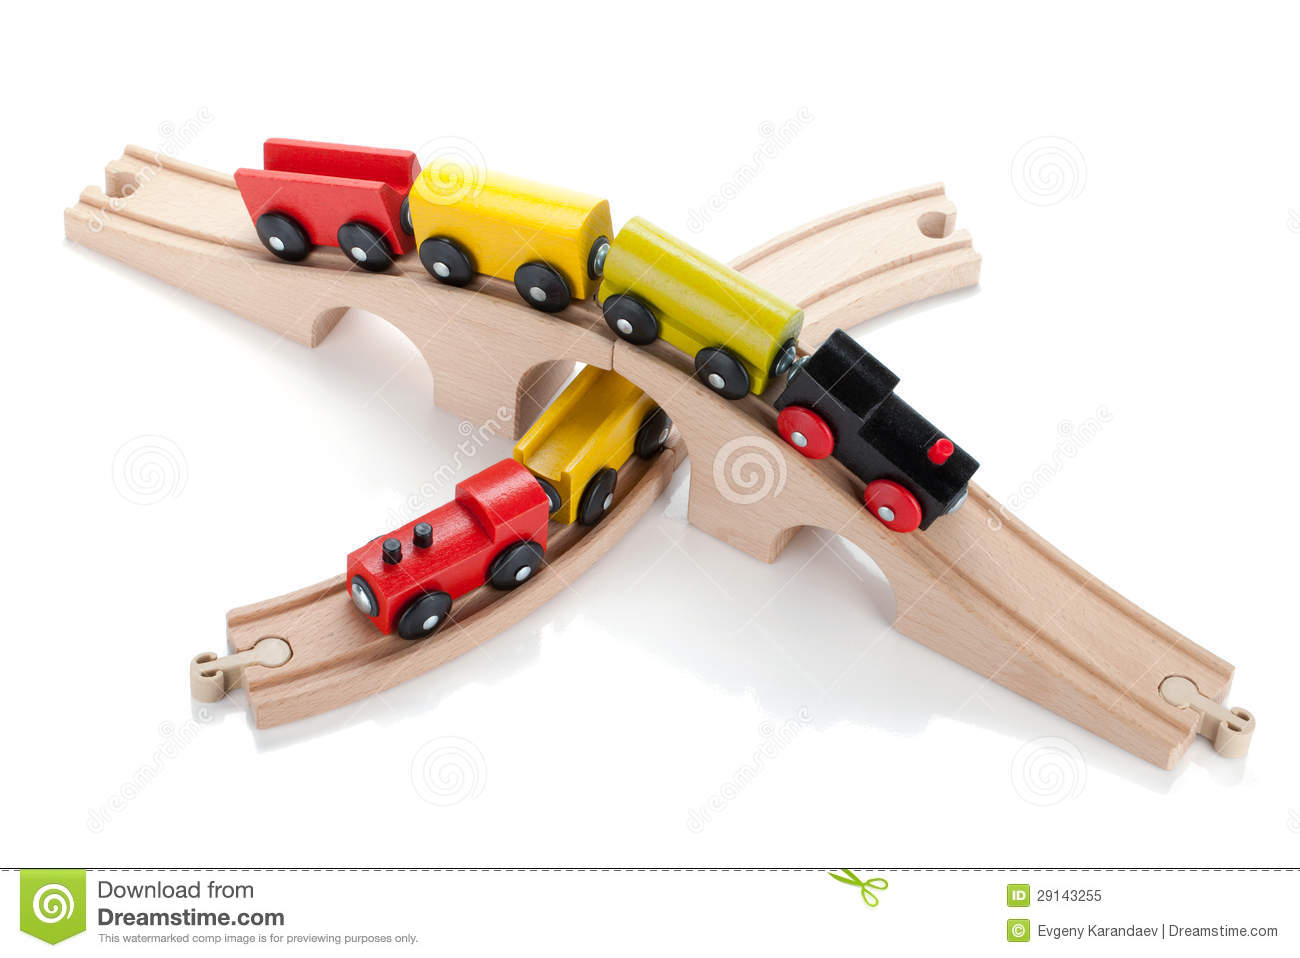 Wooden Toy Trains Royalty Free Stock Photo - Image: 29143255